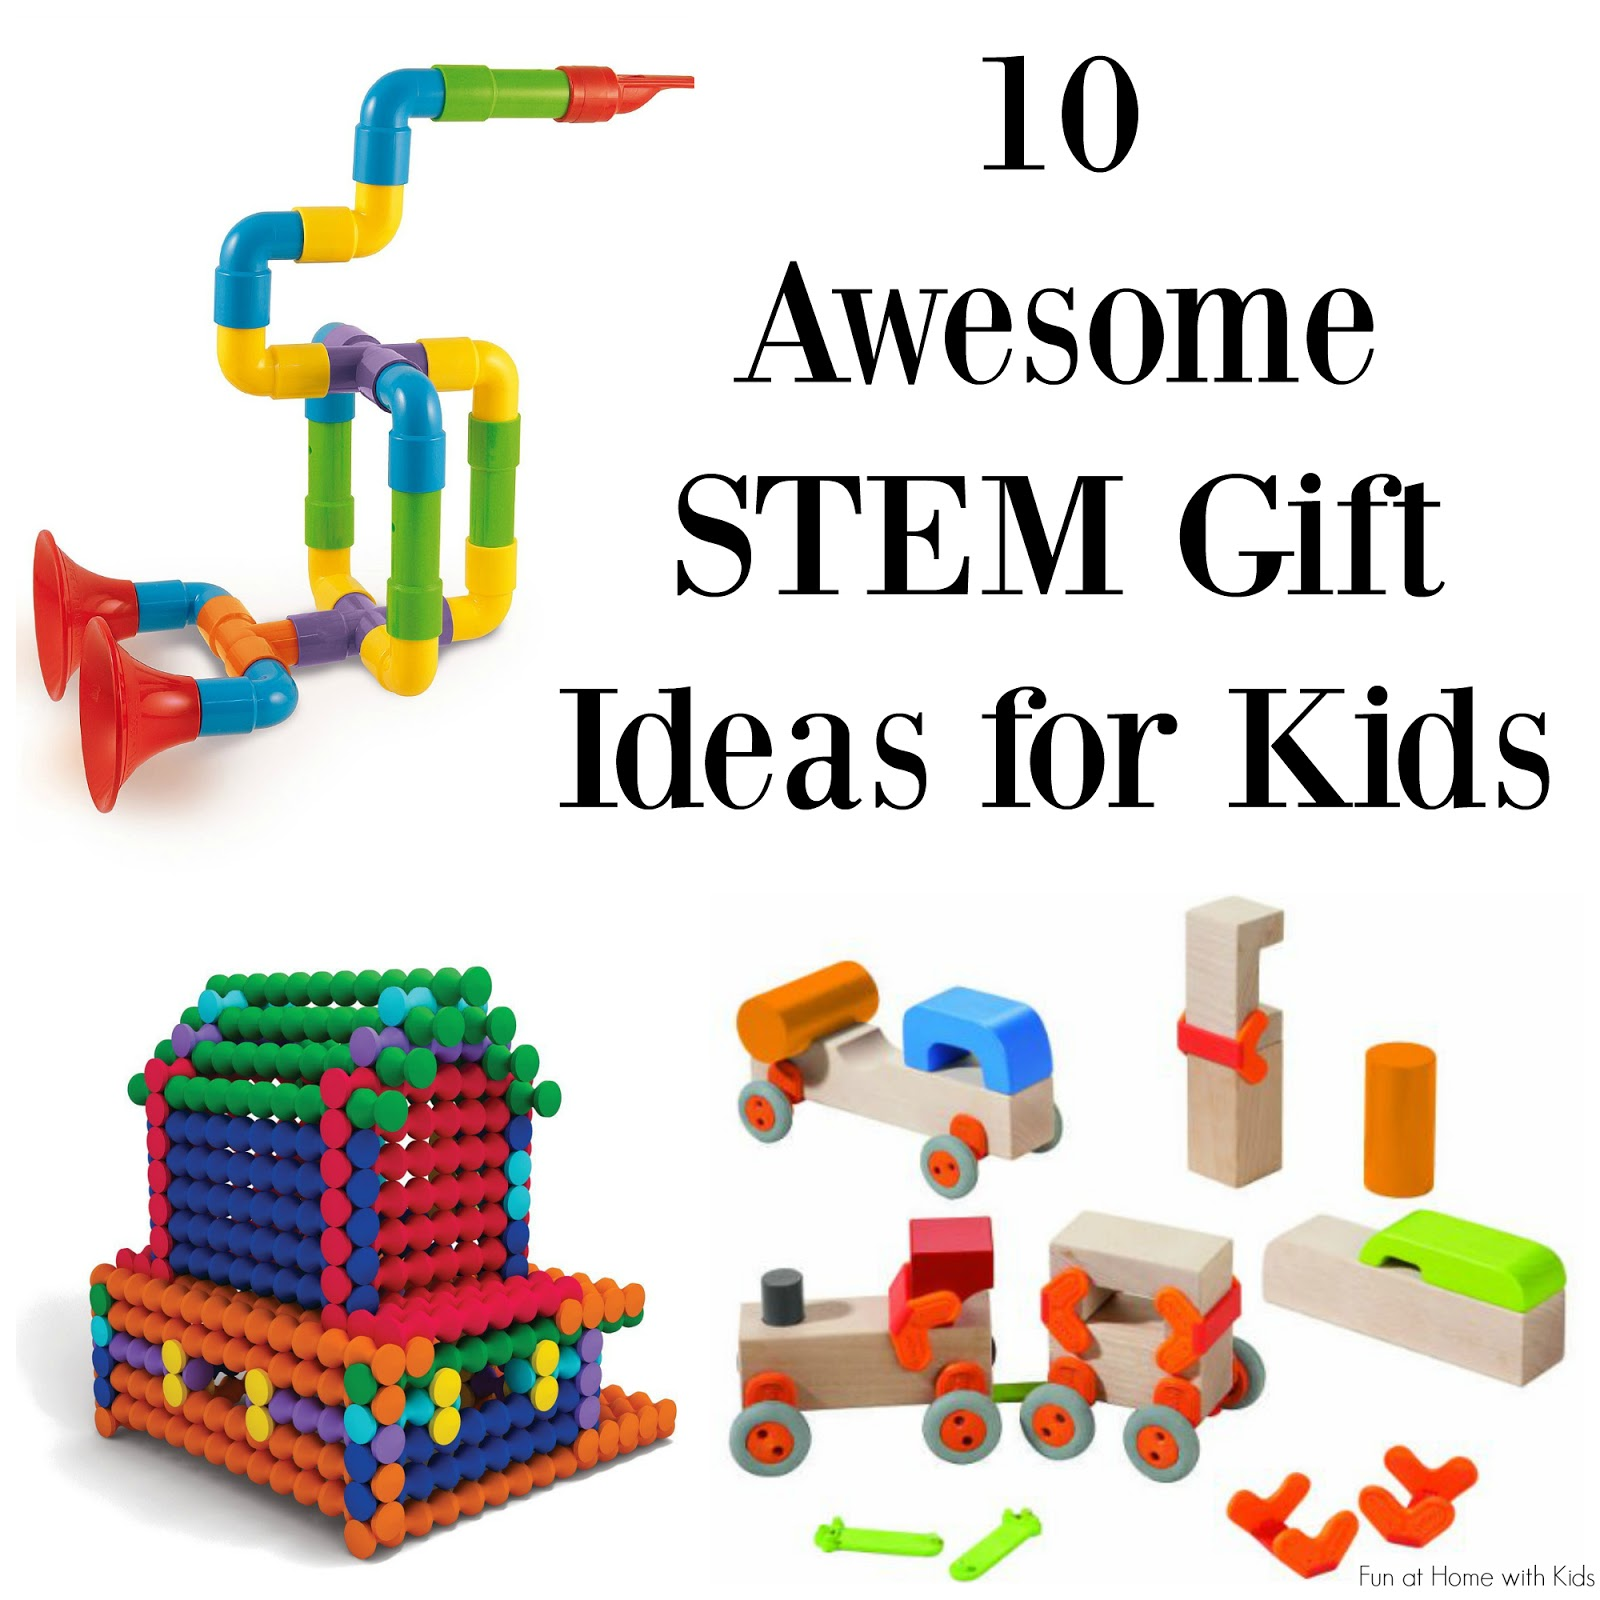 10 Amazing STEM Gifts for Kids chosen by a Science Teacher